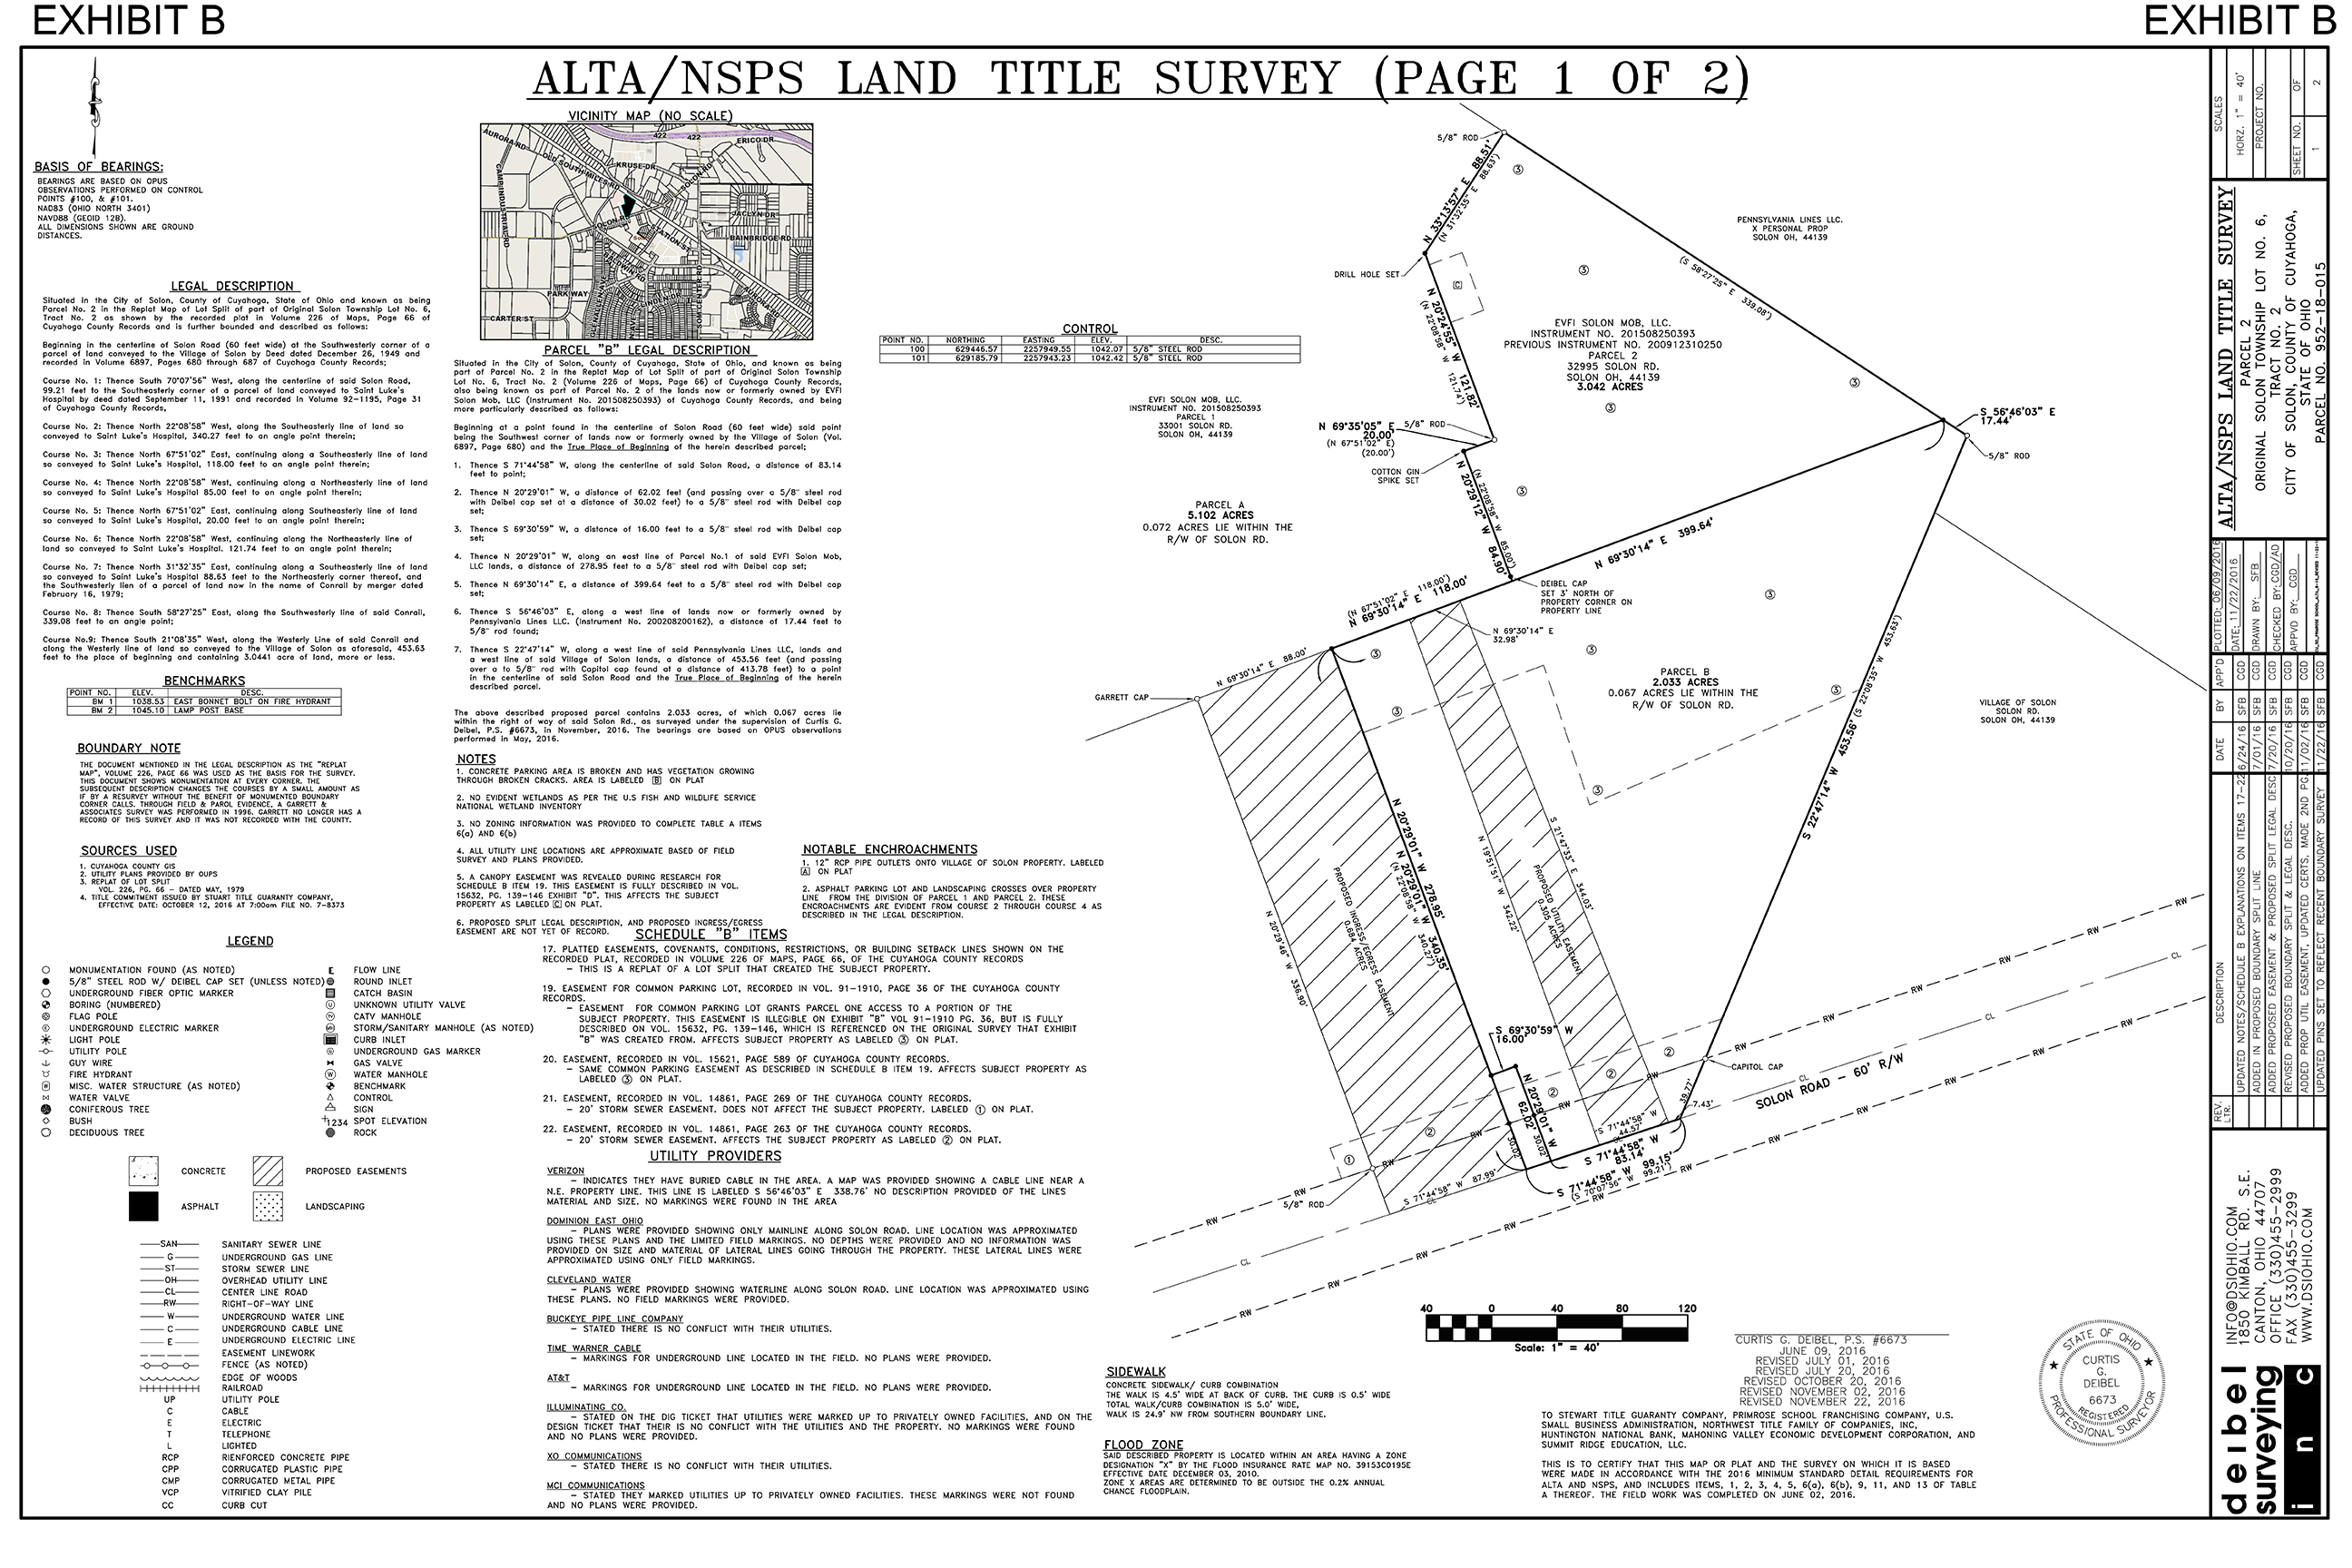 ALTA/NSPS land title survey